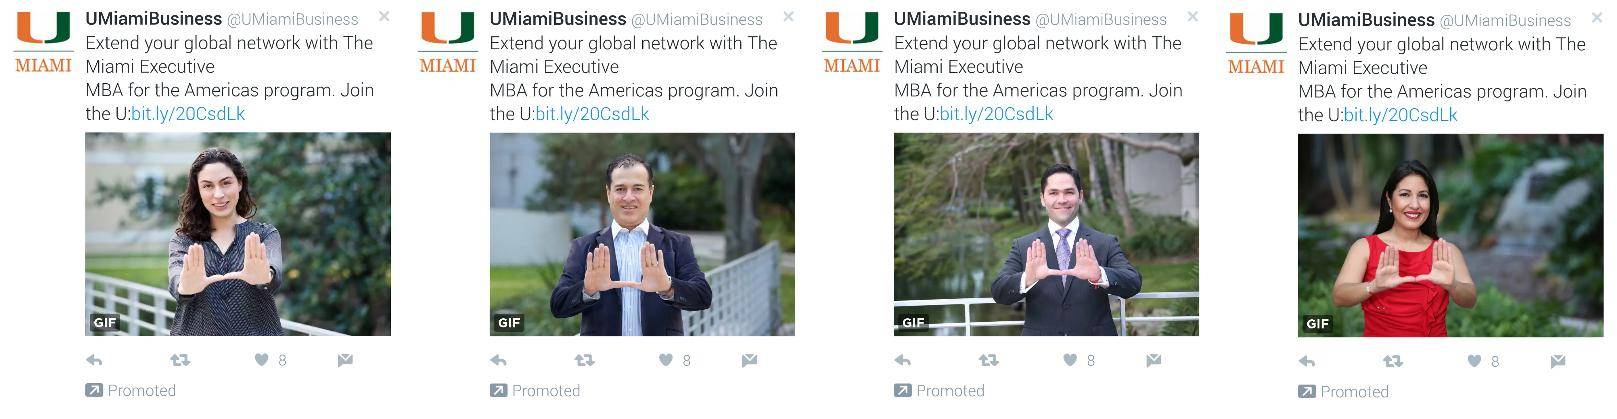 Twitter ad education example